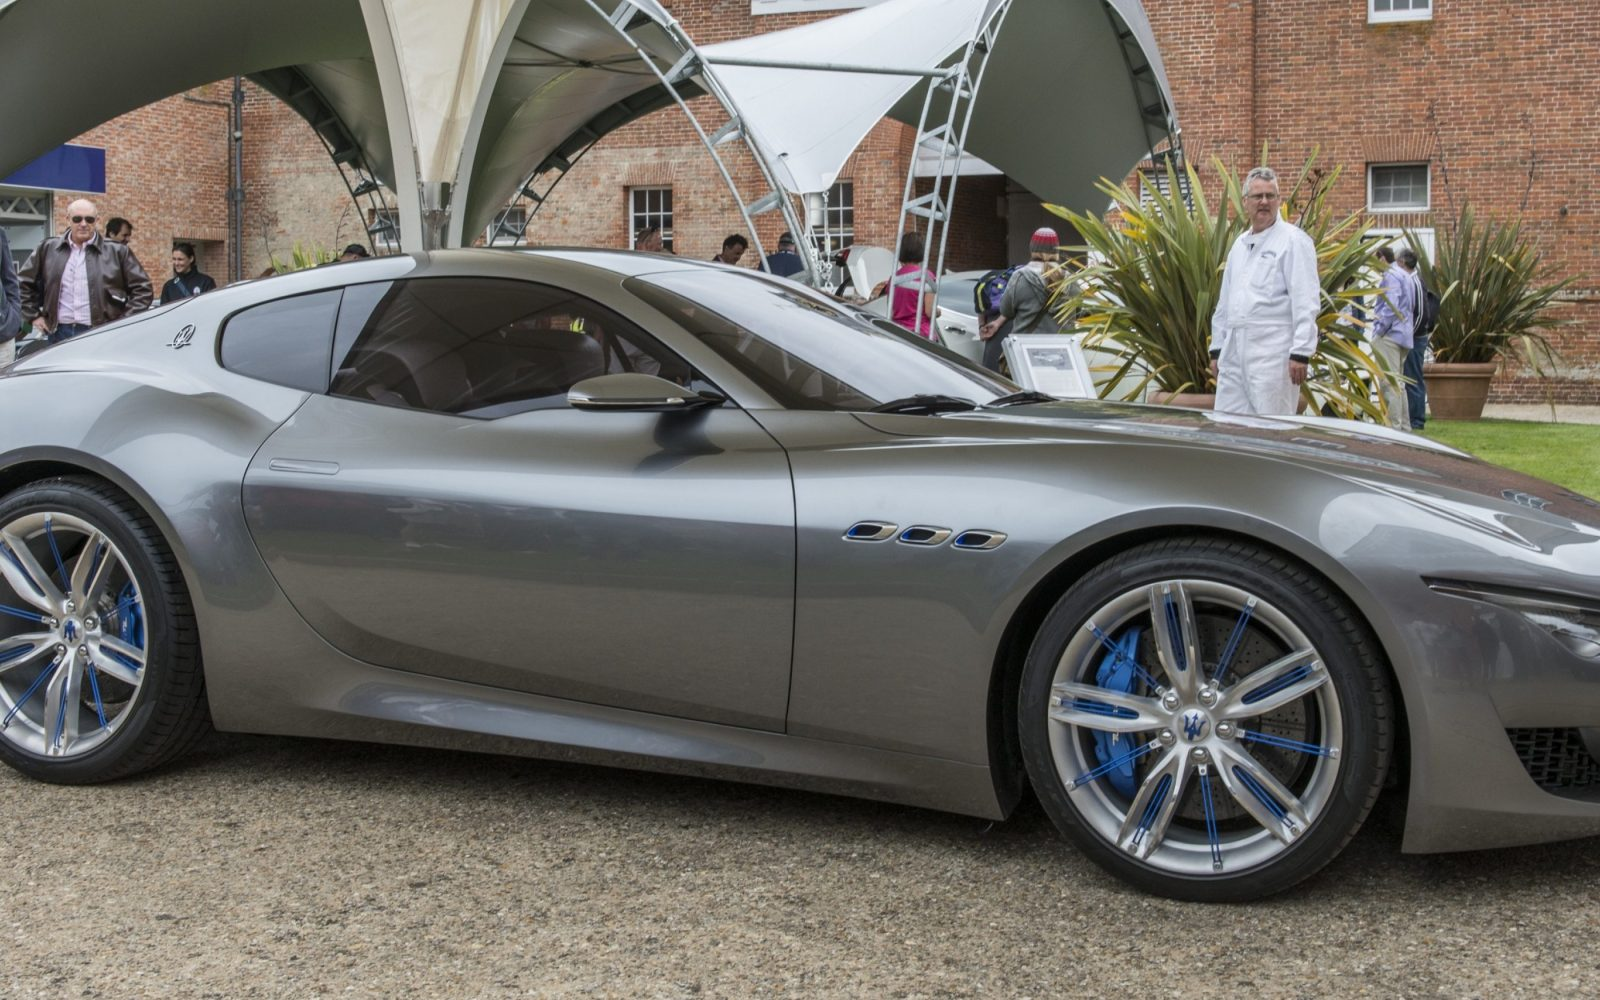 Maserati confirms it will launch an all-electric version of its stunning Alfieri concept car